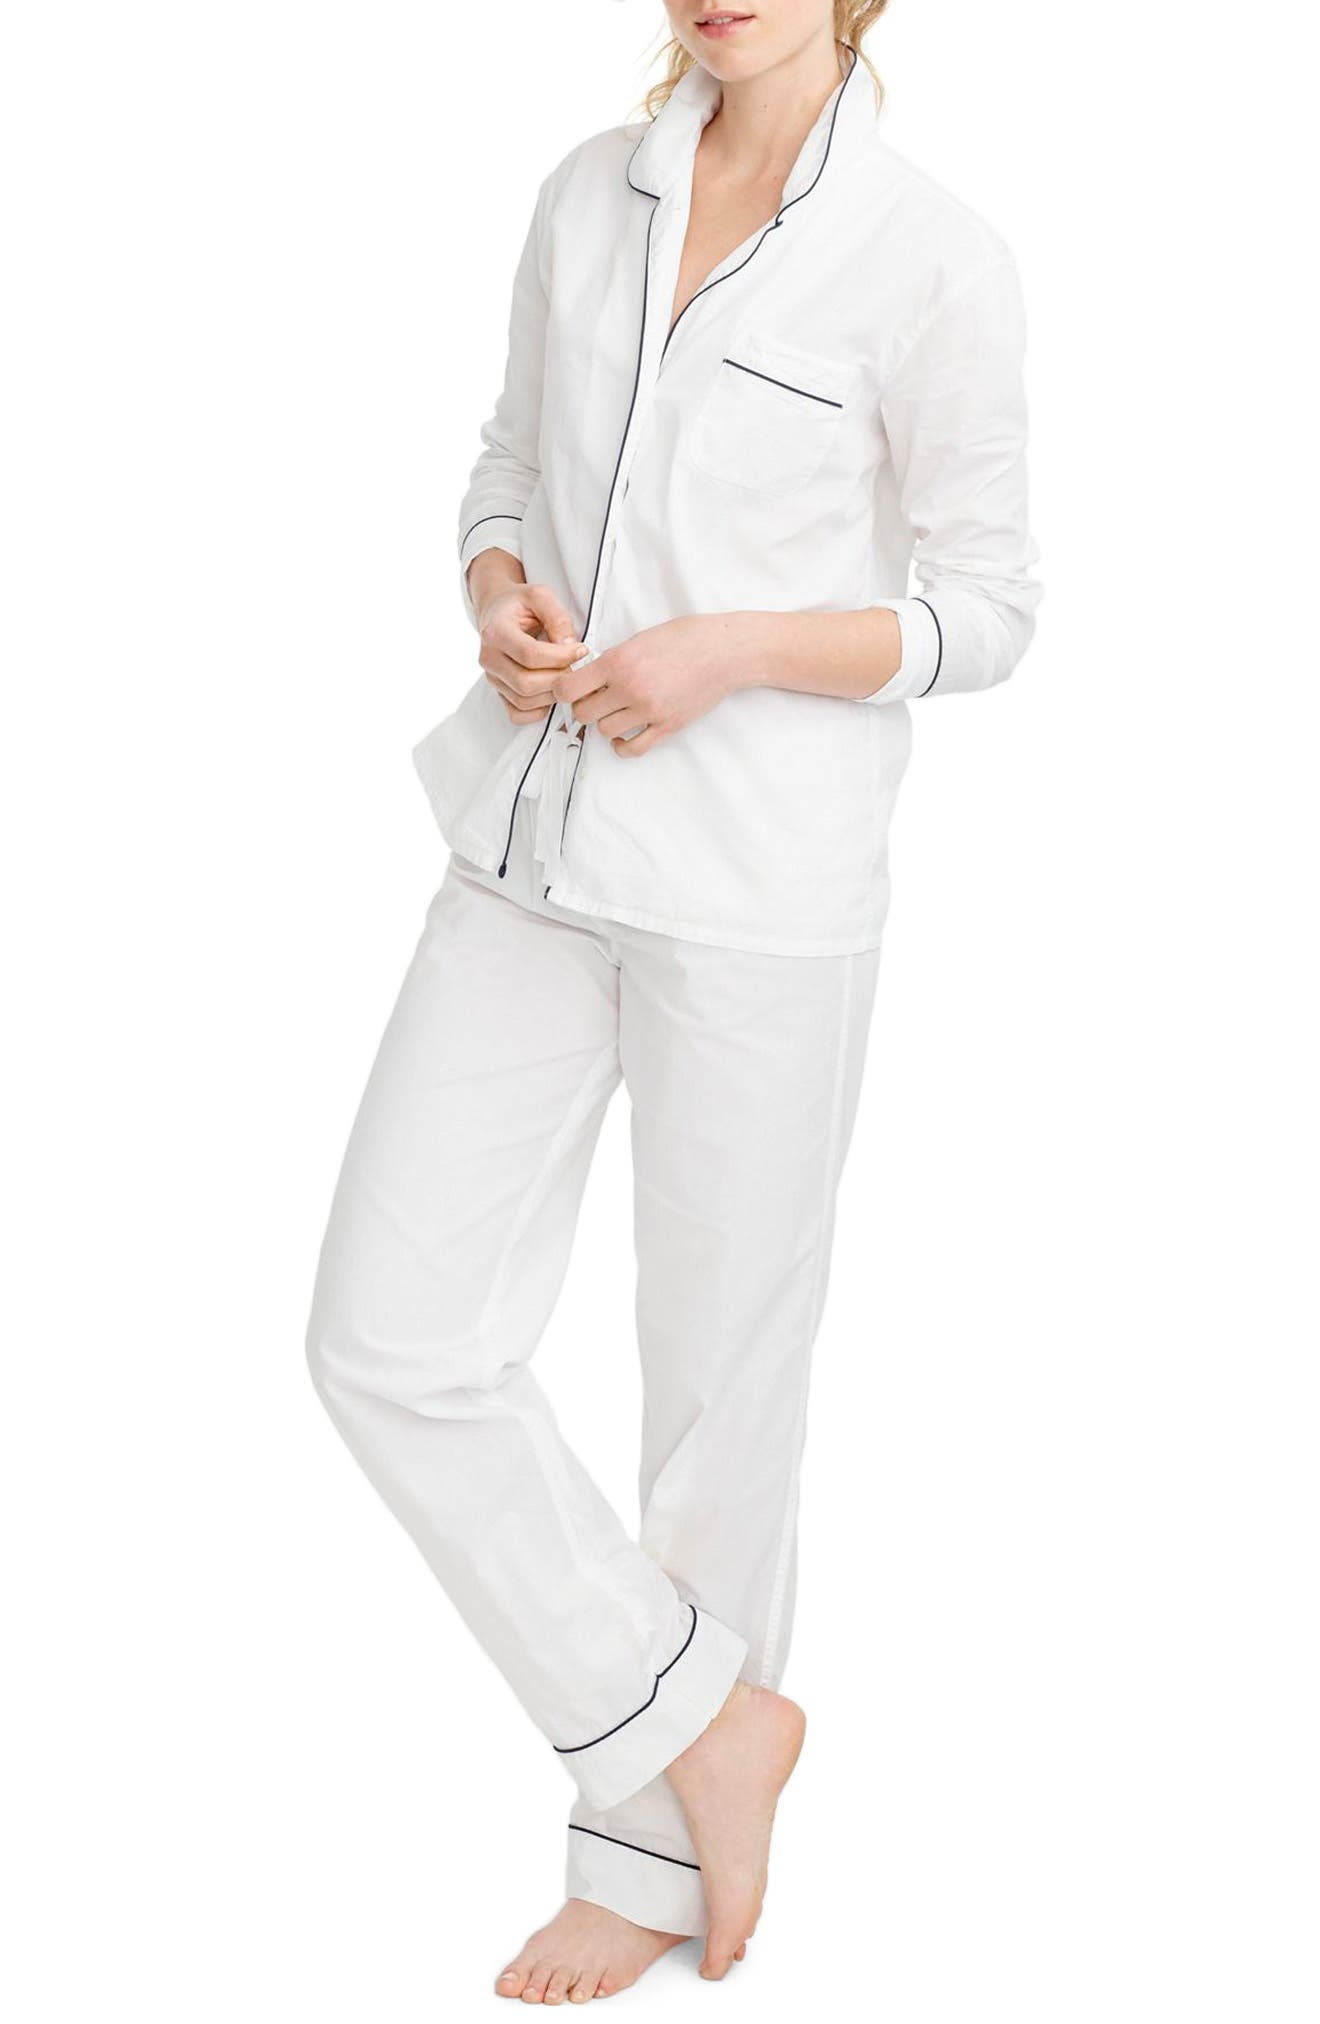 J.CREW, Vintage Cotton Pajamas, Main thumbnail 1, color, WHITE